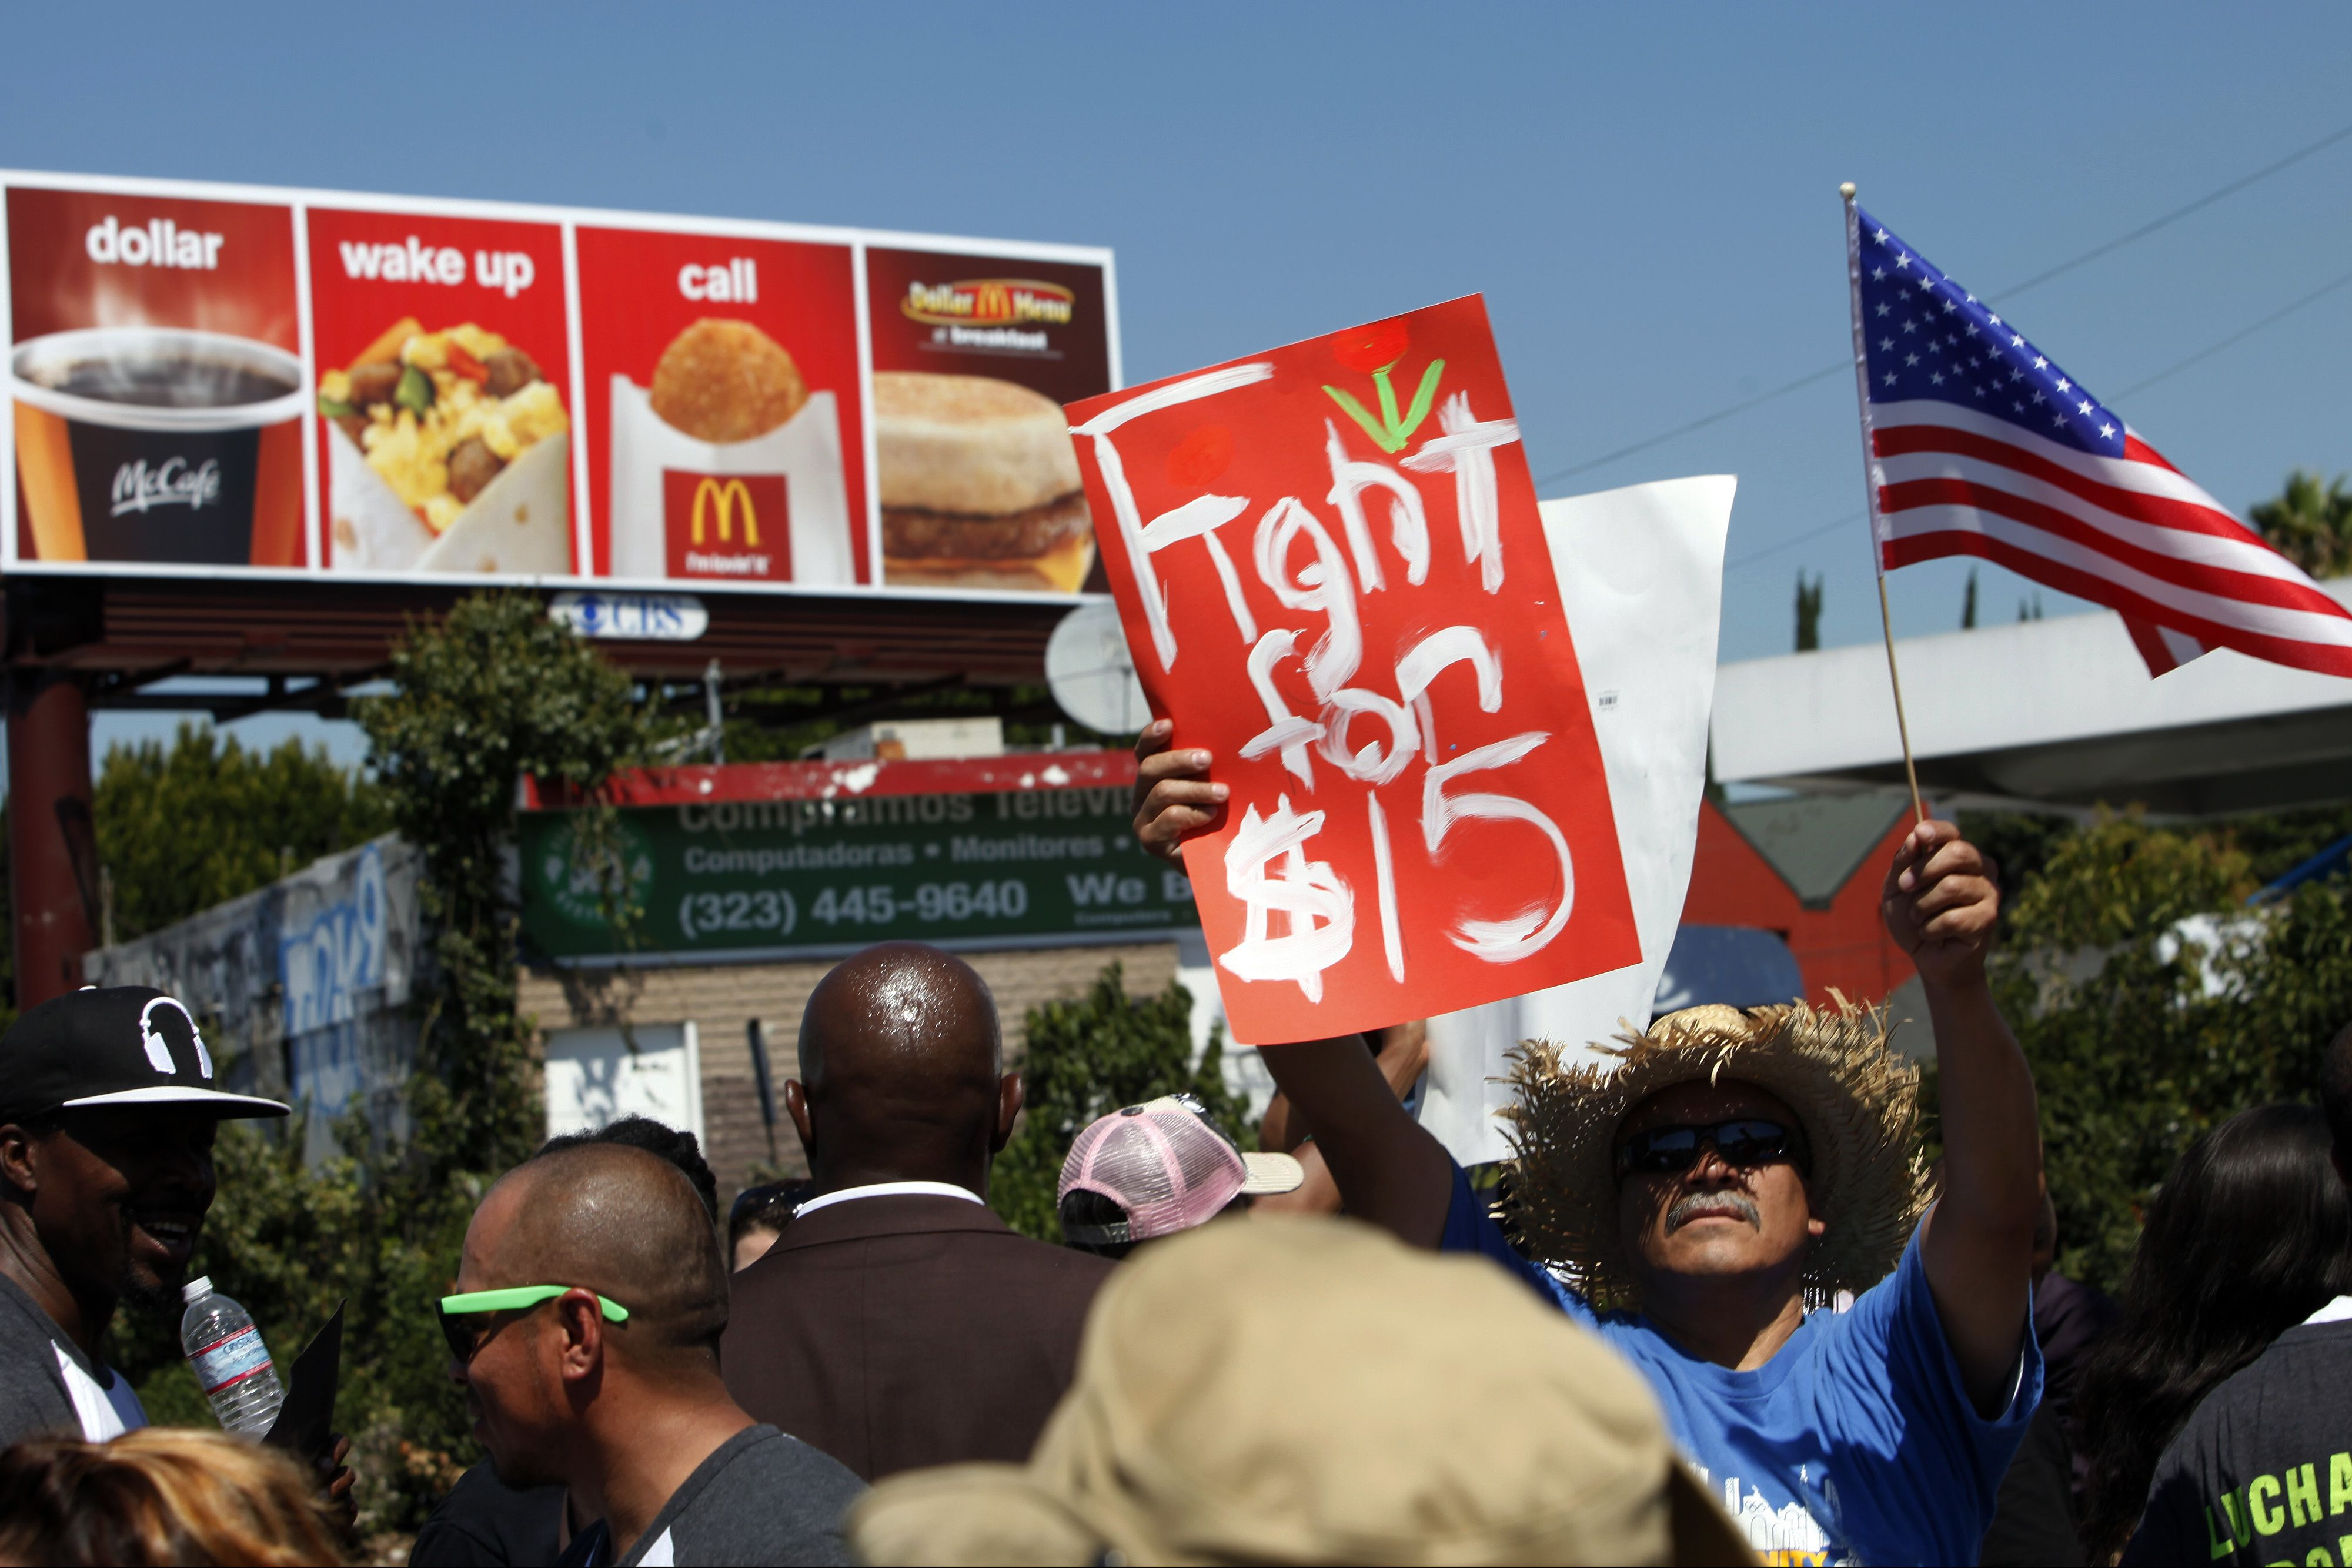 Here's What a $15 Per Hour Wage Means For Fast Food Prices